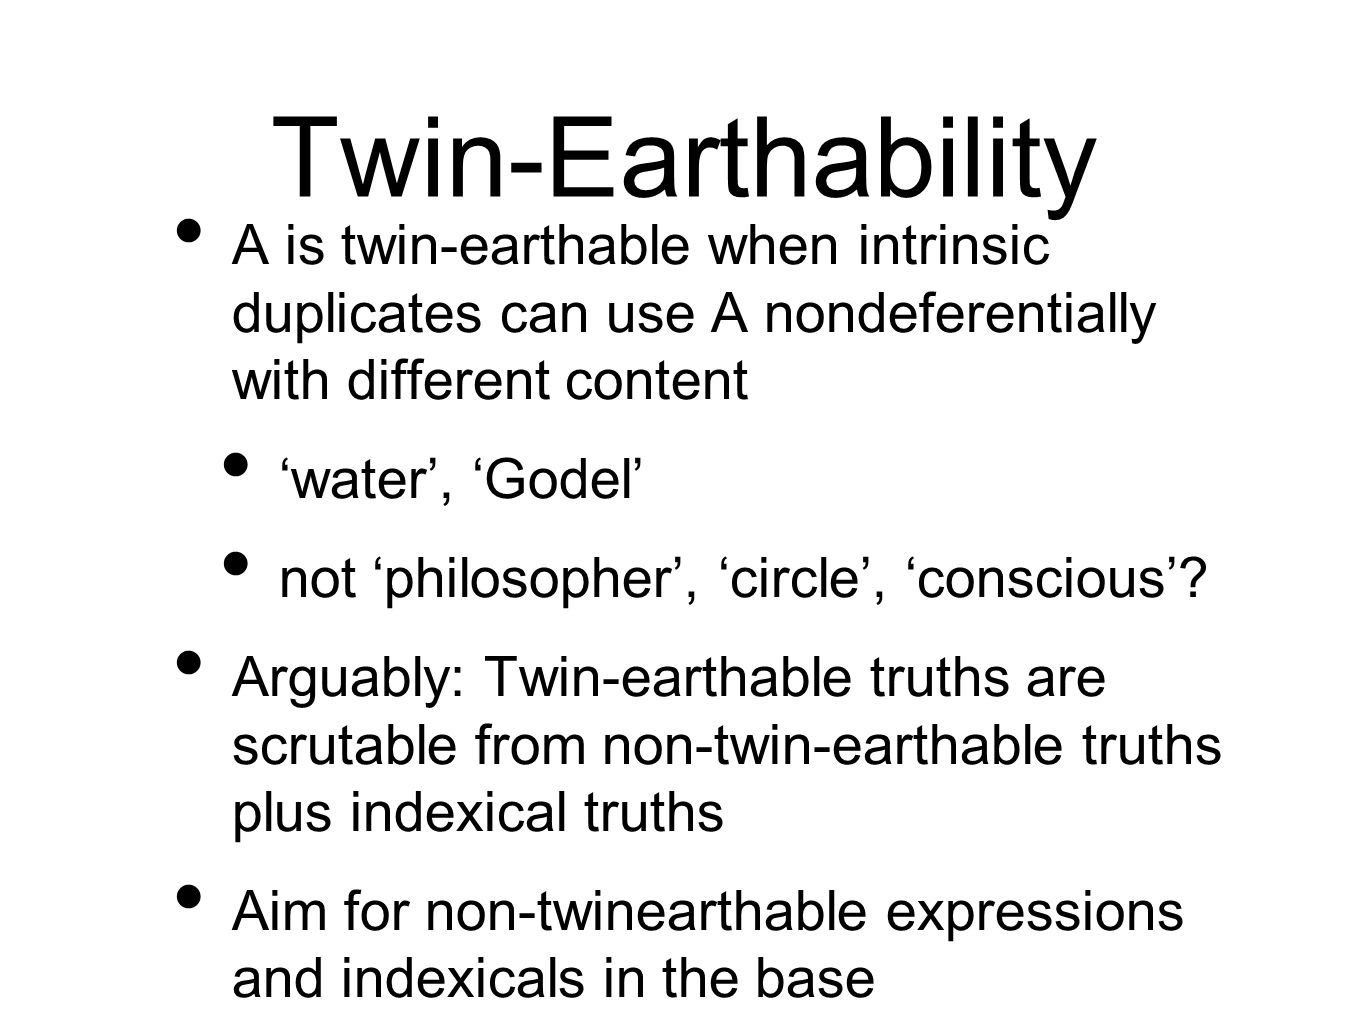 Twin-Earthability A is twin-earthable when intrinsic duplicates can use A nondeferentially with different content.